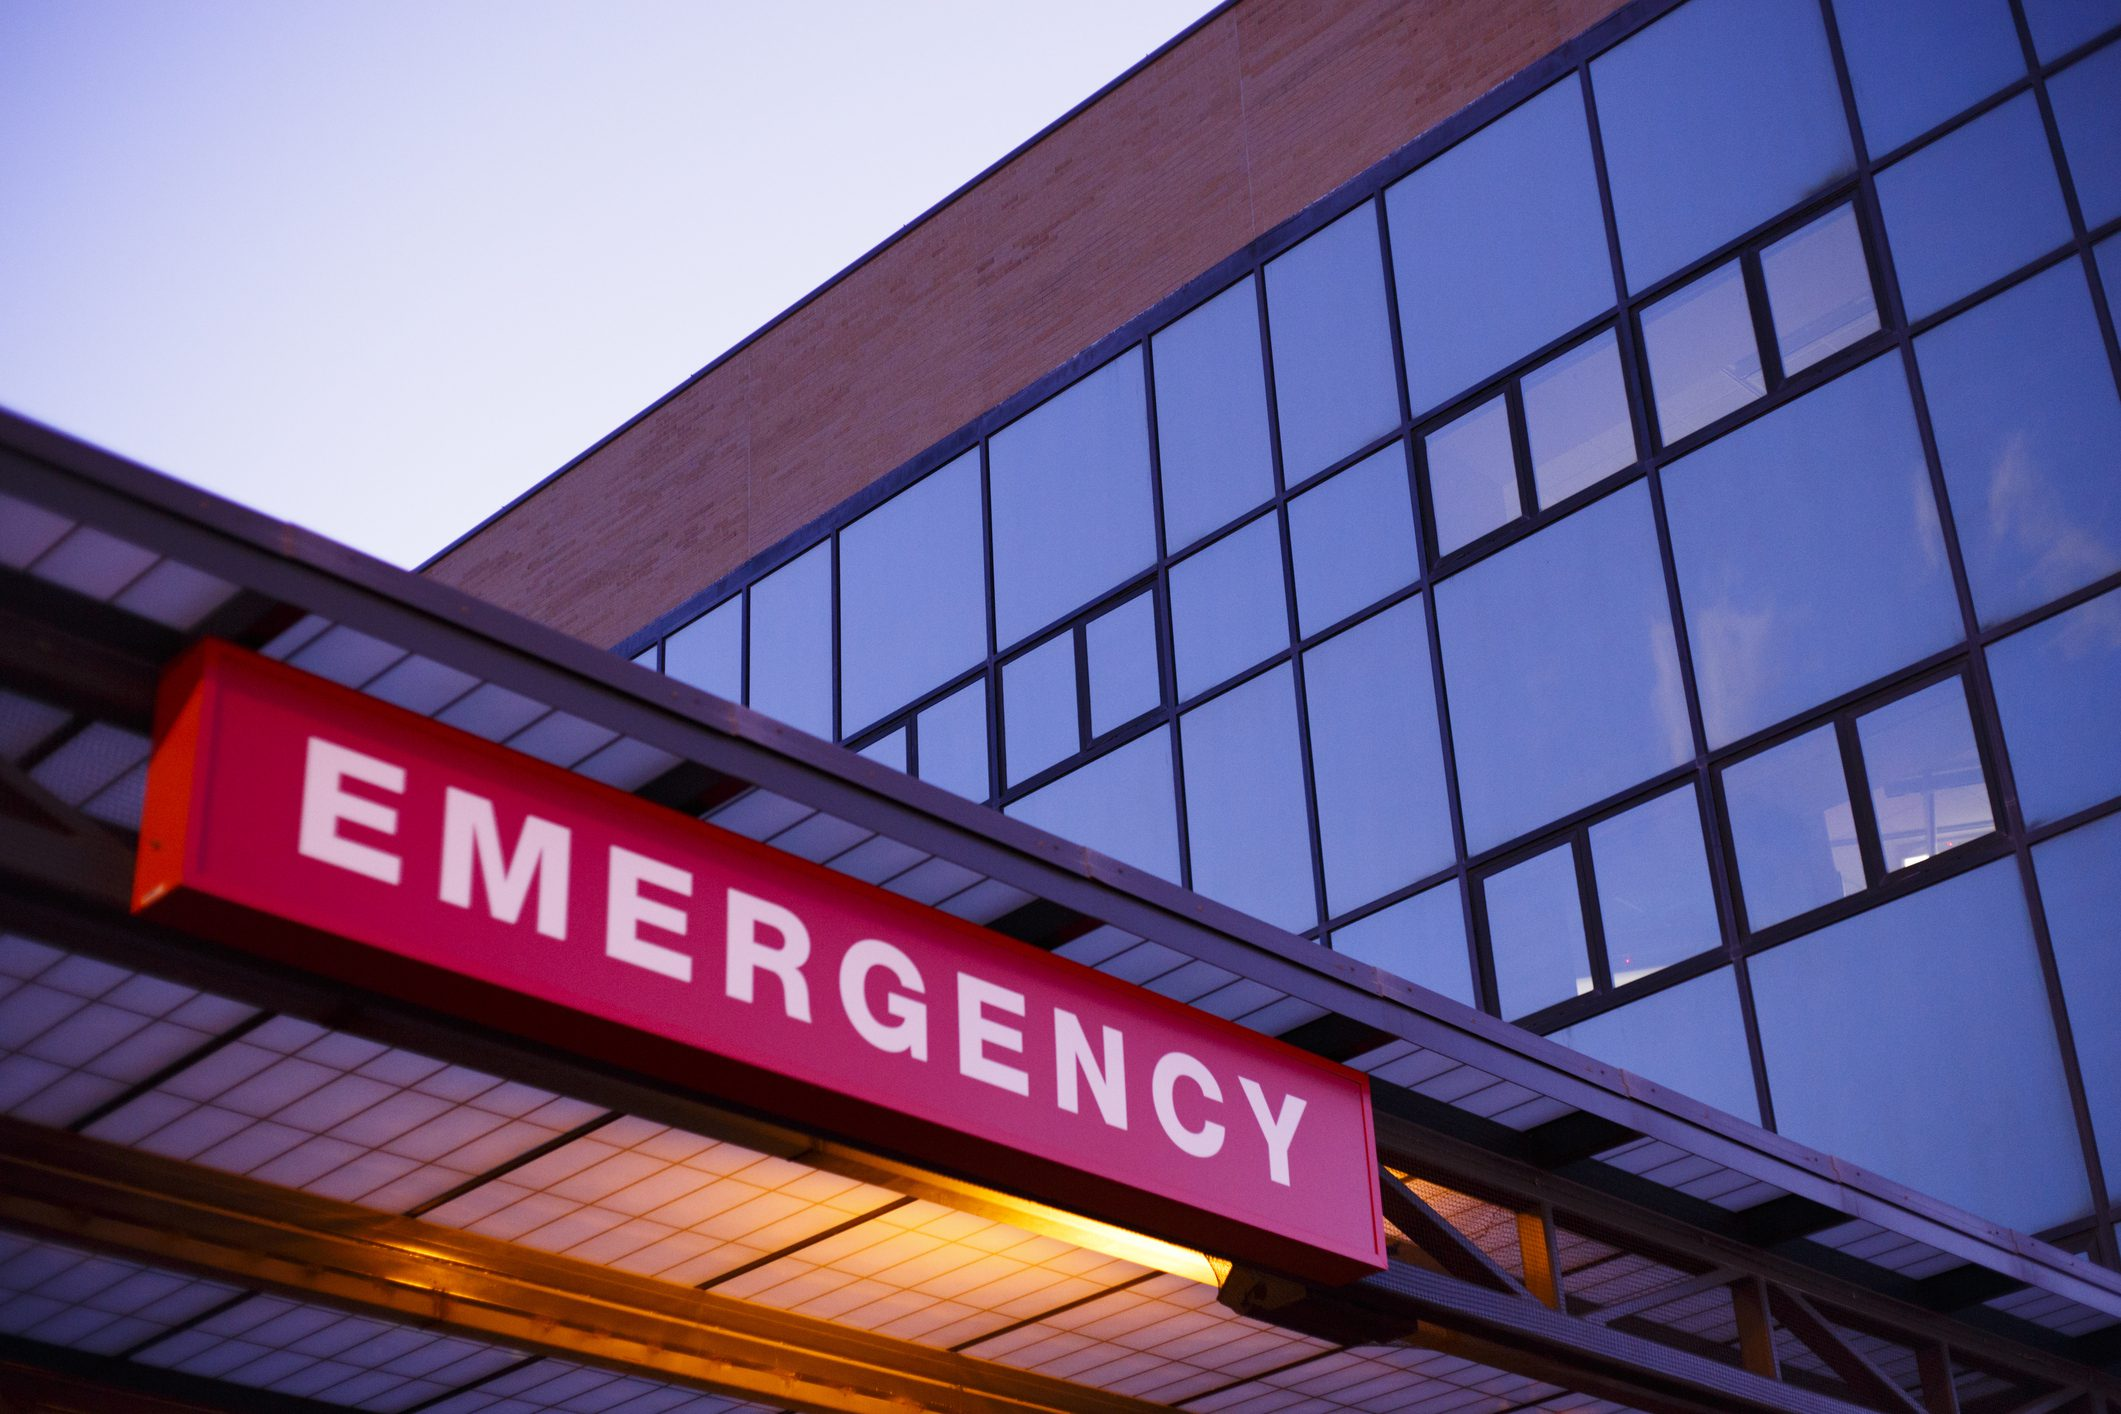 An emergency department sign.